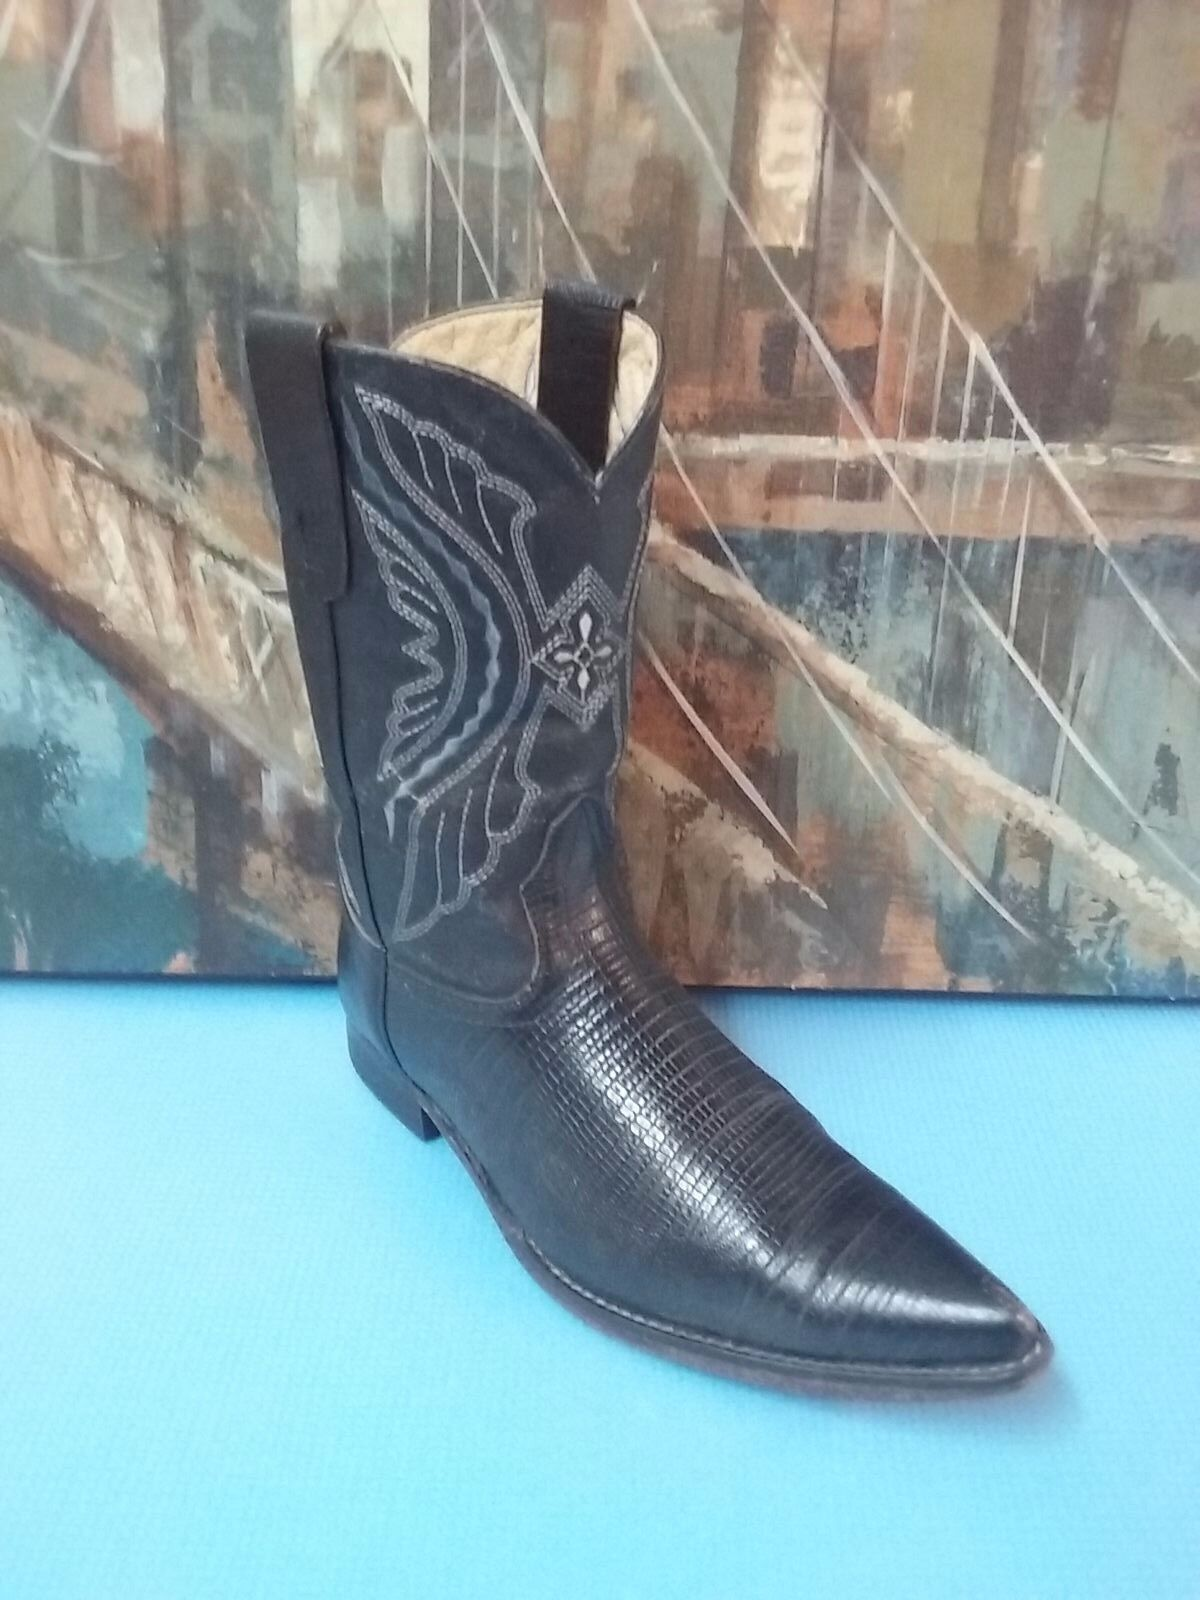 EL DORADO EXOTIC COWBOY BOOTS  MEN'S 6, WOMENS 7